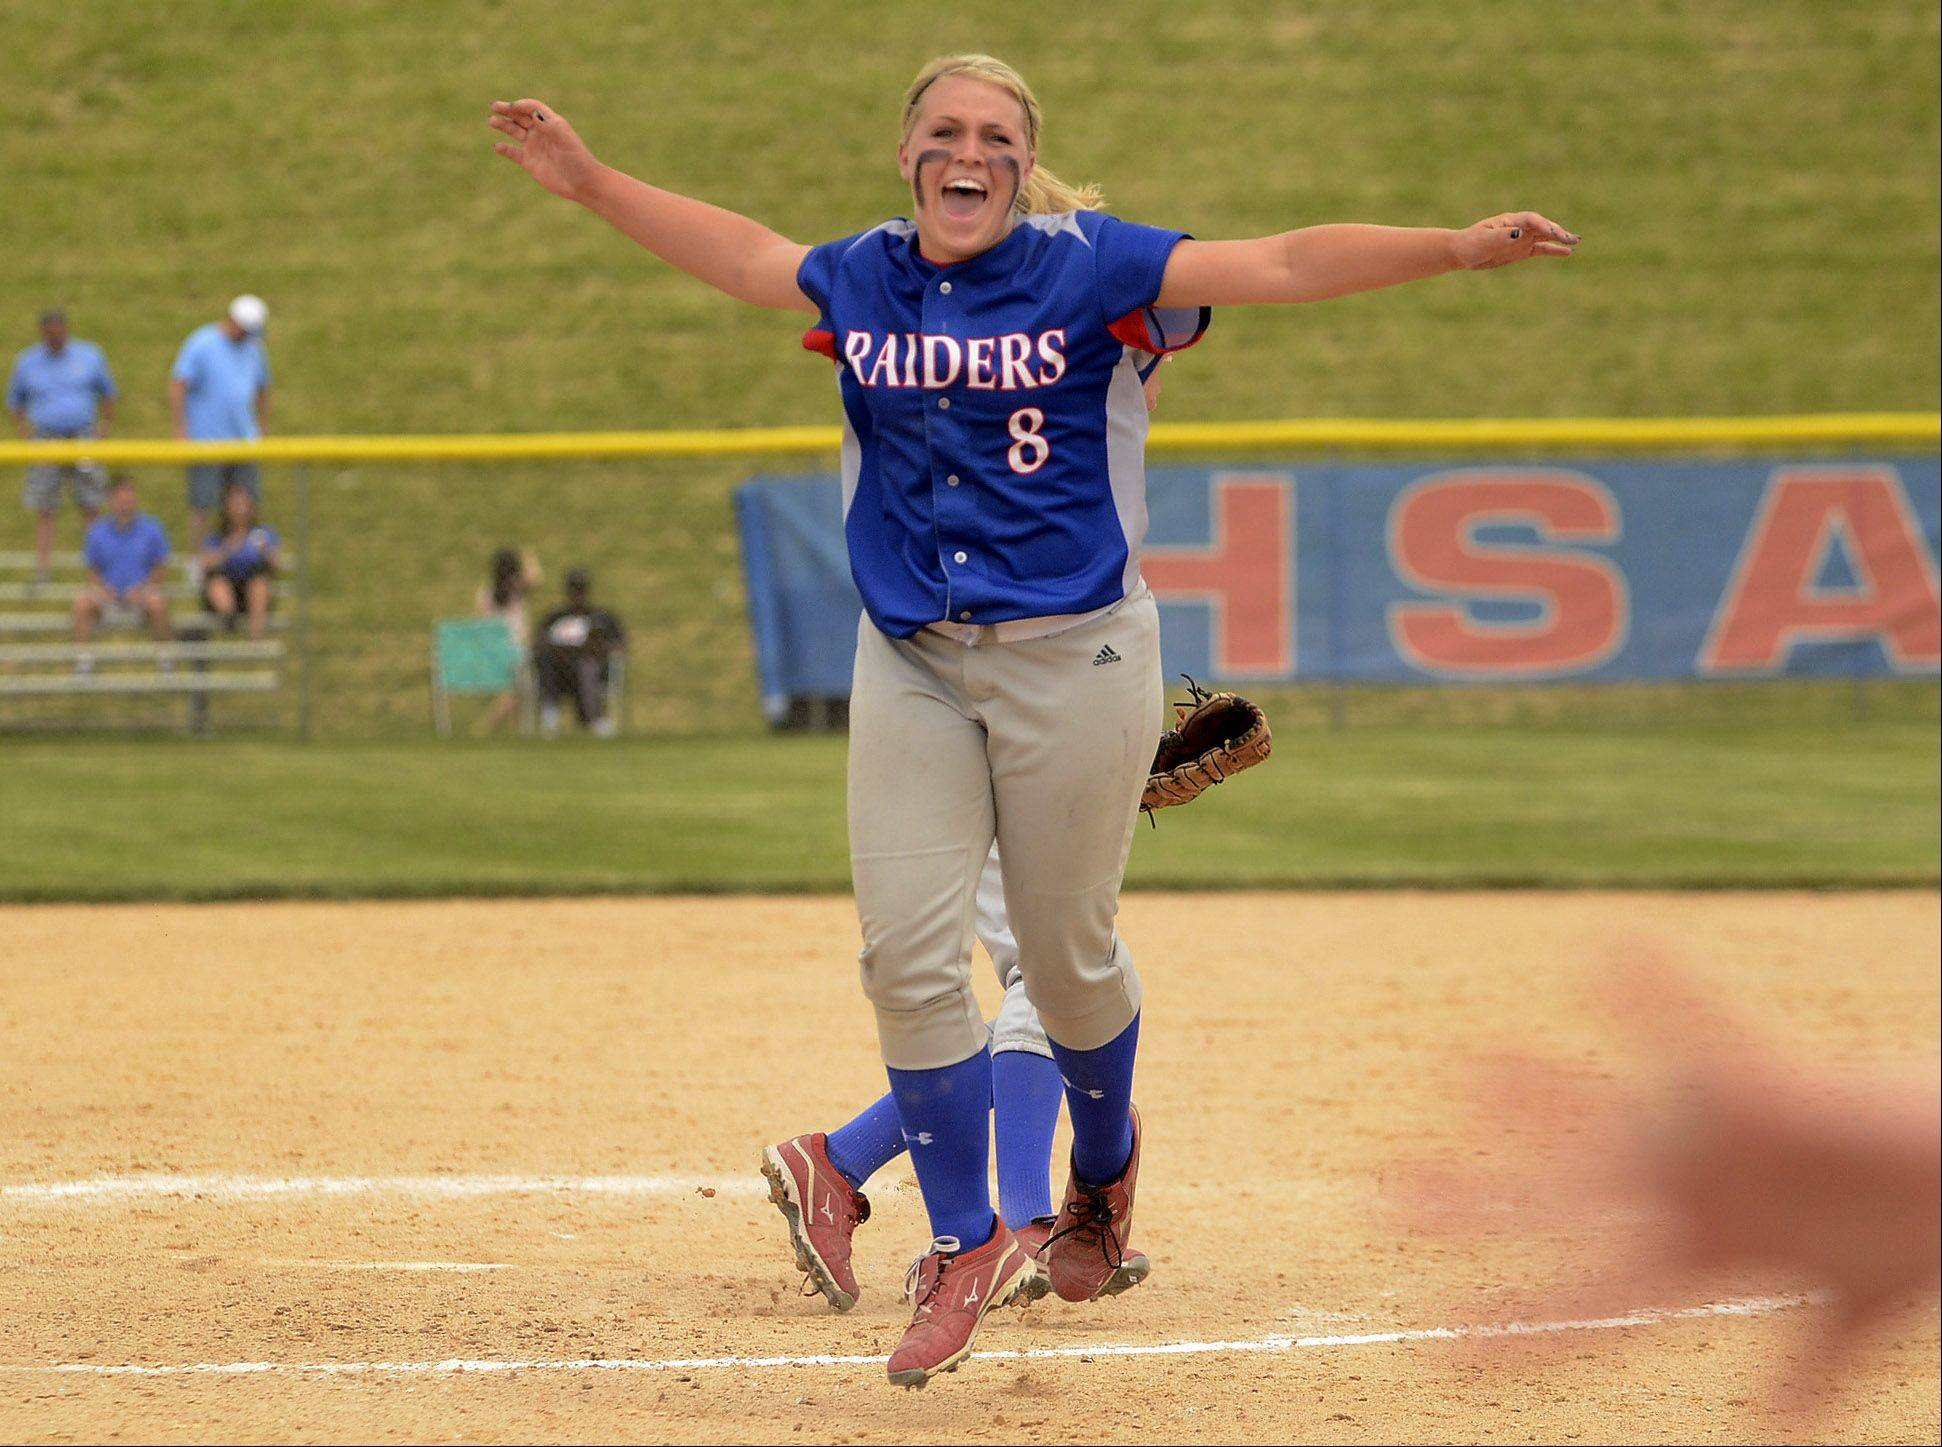 Pitcher Stephanie Chitkowski jumps for joy after the final out of the game as Glenbard South repeats as Class 3A softball state champions.